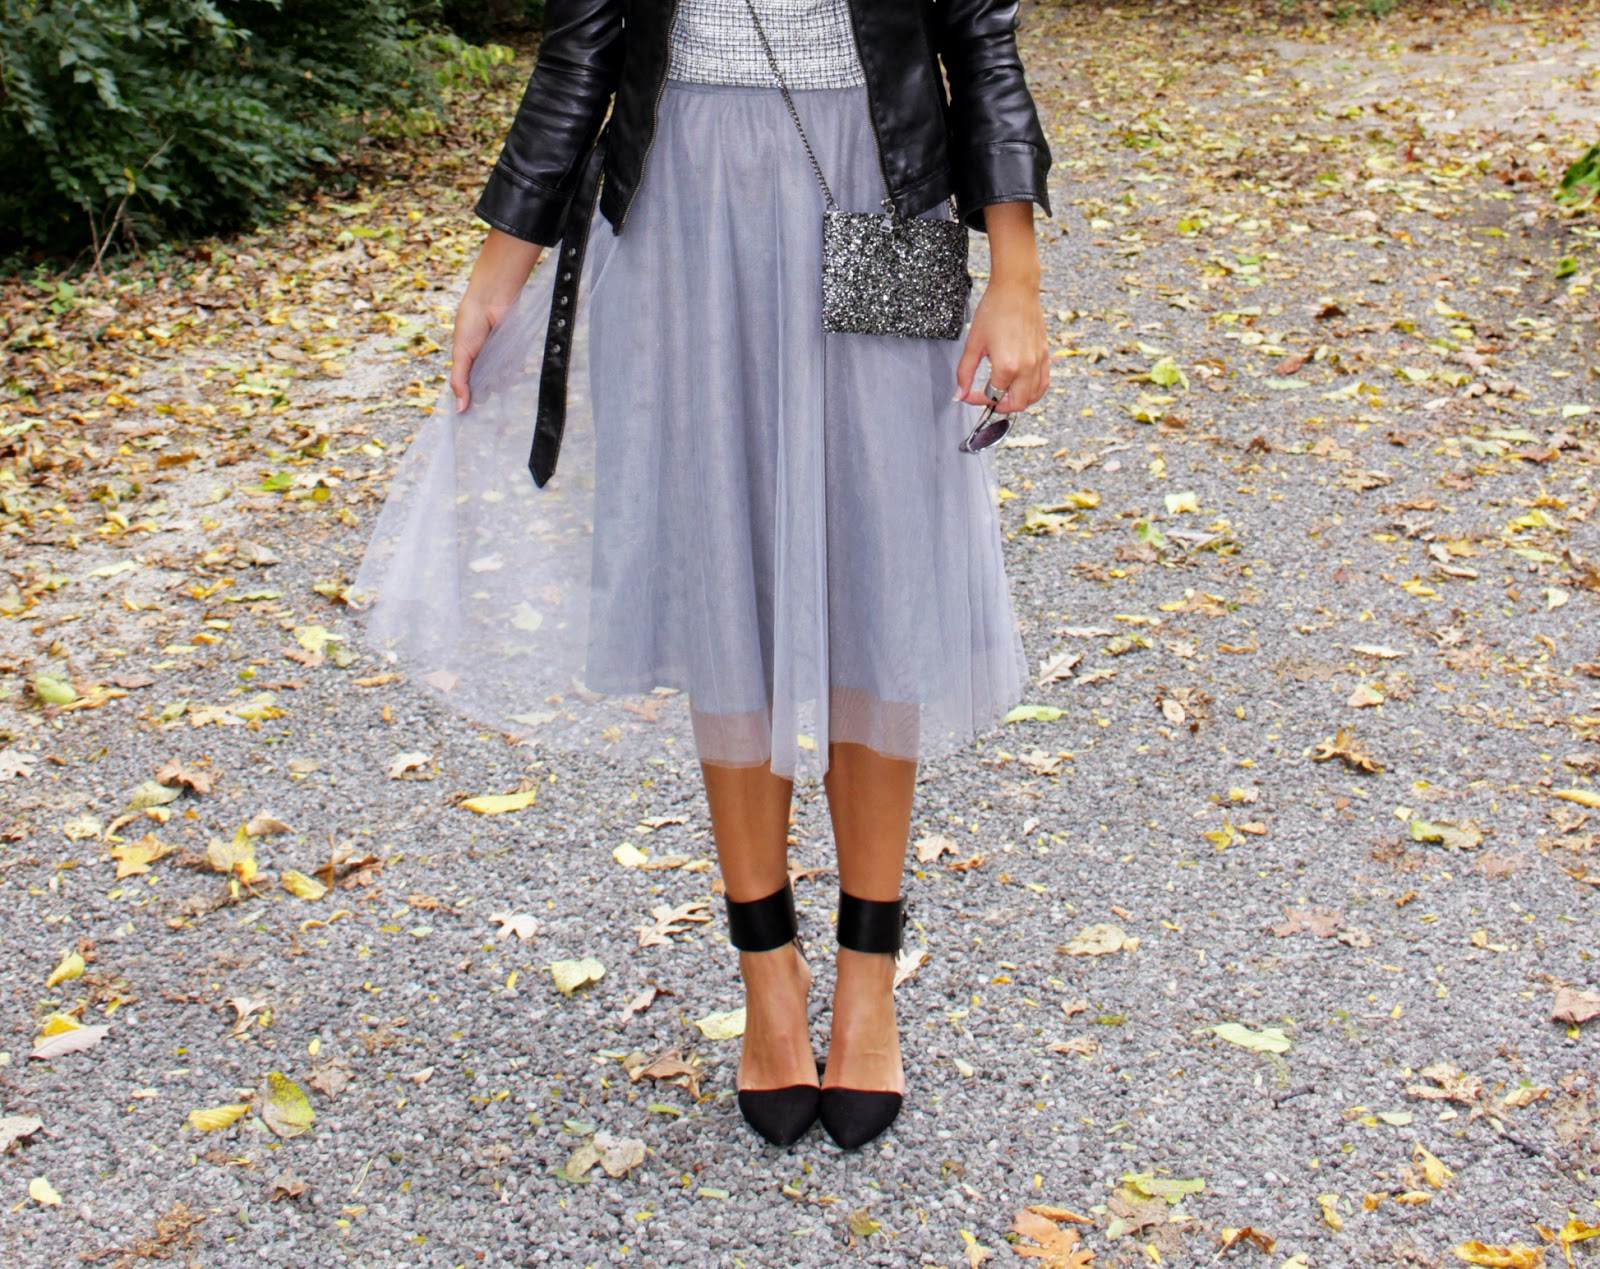 43dda3bb2b Faux Leather Jacket: Express | Top: Express [cropped tank version here] | Tulle  Skirt: LC Lauren Conrad | Earrings: Payless | Rings: Charlotte Russe [in ...